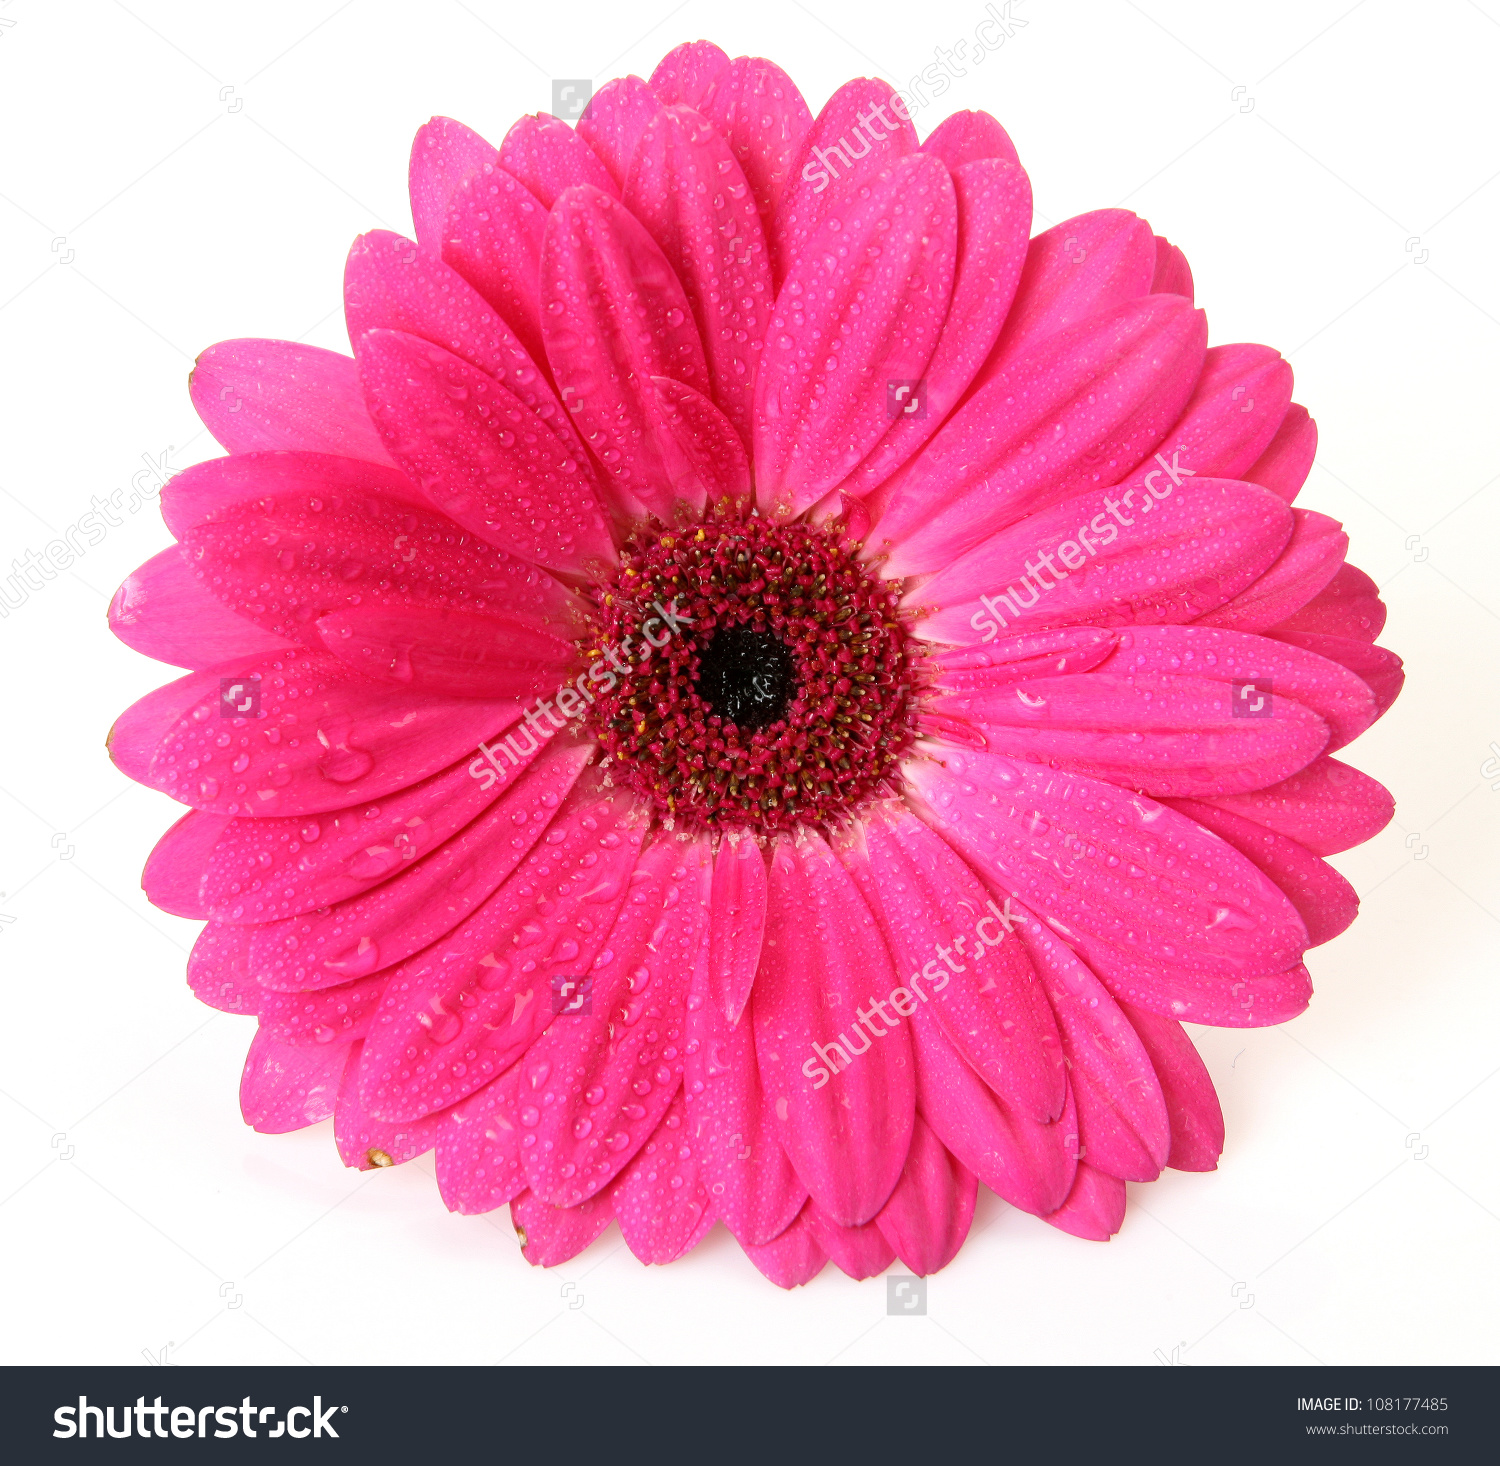 Free photo pink flower pink plant flower free download jooinn pink flower mightylinksfo